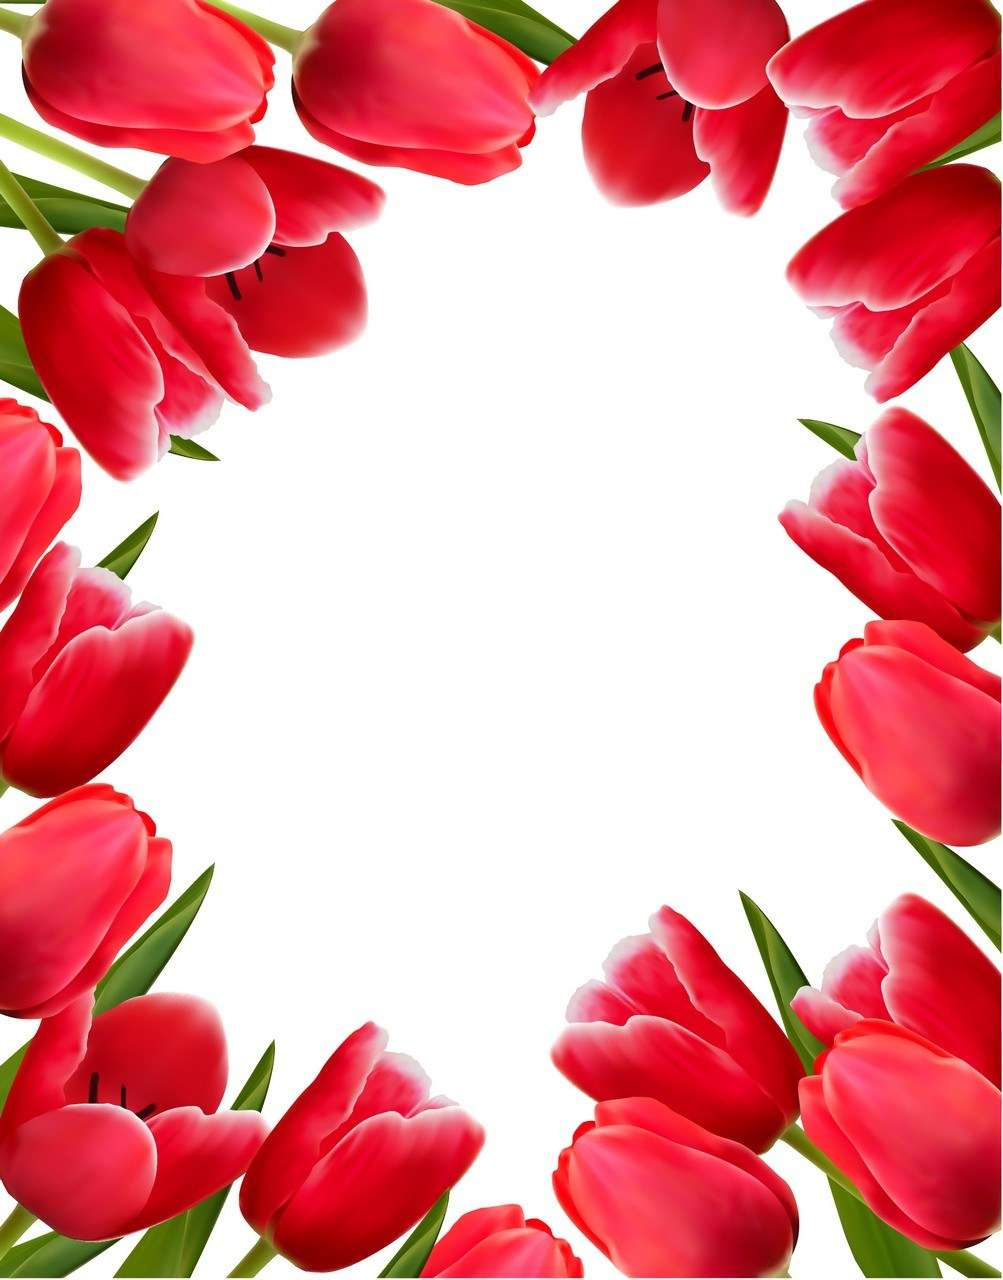 Page Borders Design Flower Image Gallery HCPR